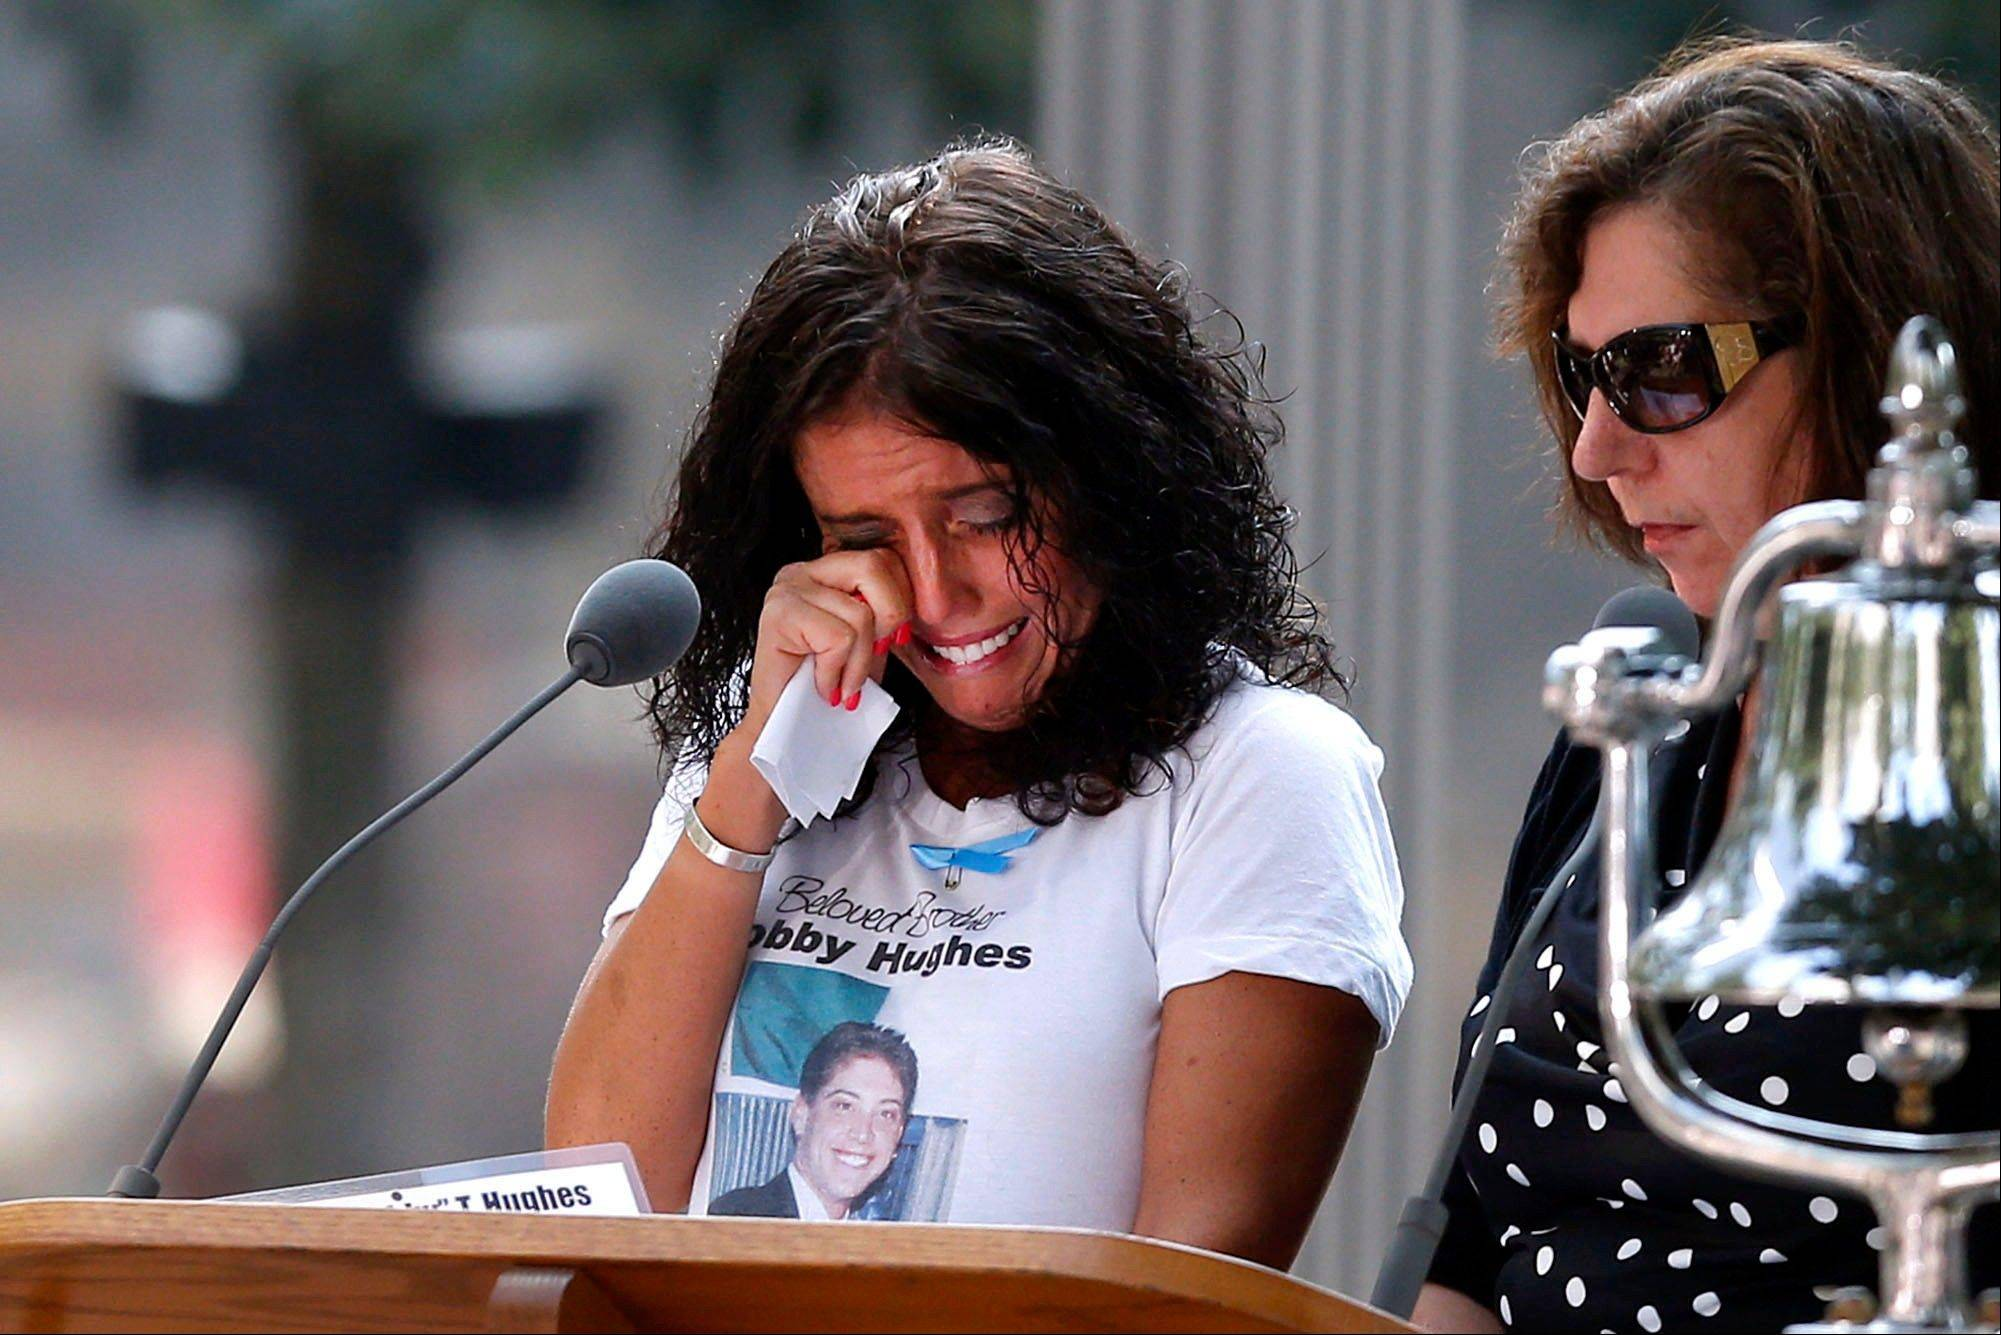 A woman wipers her eyes after reading the name of her brother, Bobby Hughes, as friends and relatives of the victims of the 9/11 terrorist attacks gather at the National September 11 Memorial at the World Trade Center site Wednesday for a ceremony marking the 12th anniversary of the attacks.